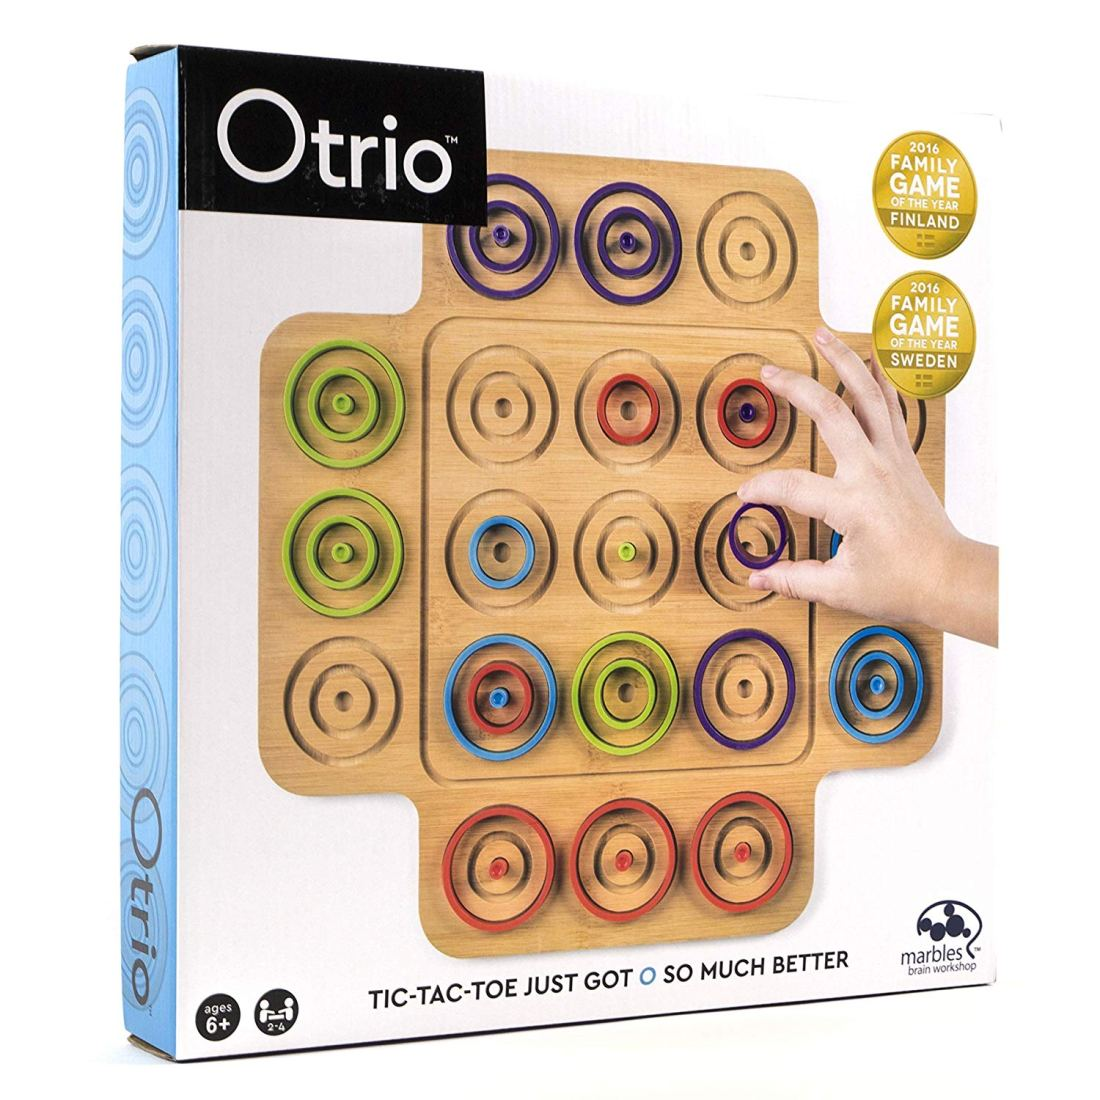 A new twist on classic 3-in-a-row style games. Exercise critical thinking and visual perception as you plot your next move. Read about all the toys on my Holiday Gift Ideas For Kids Guide.